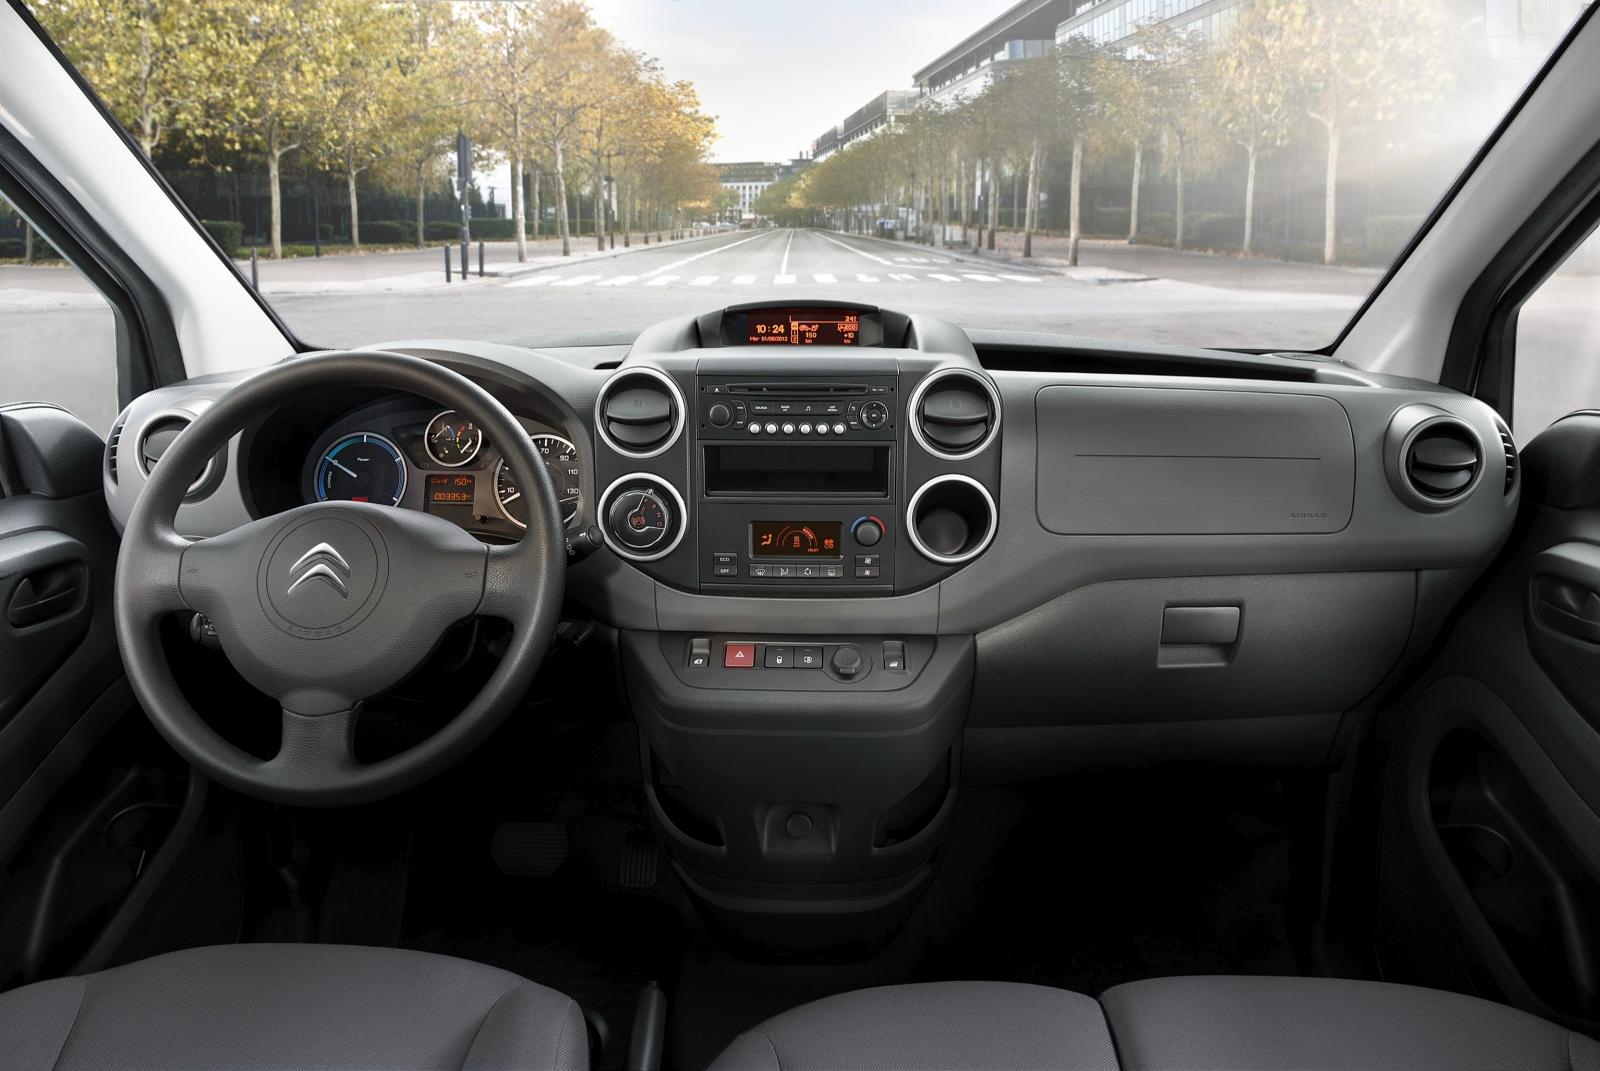 Inside Berlingo van electric 2015